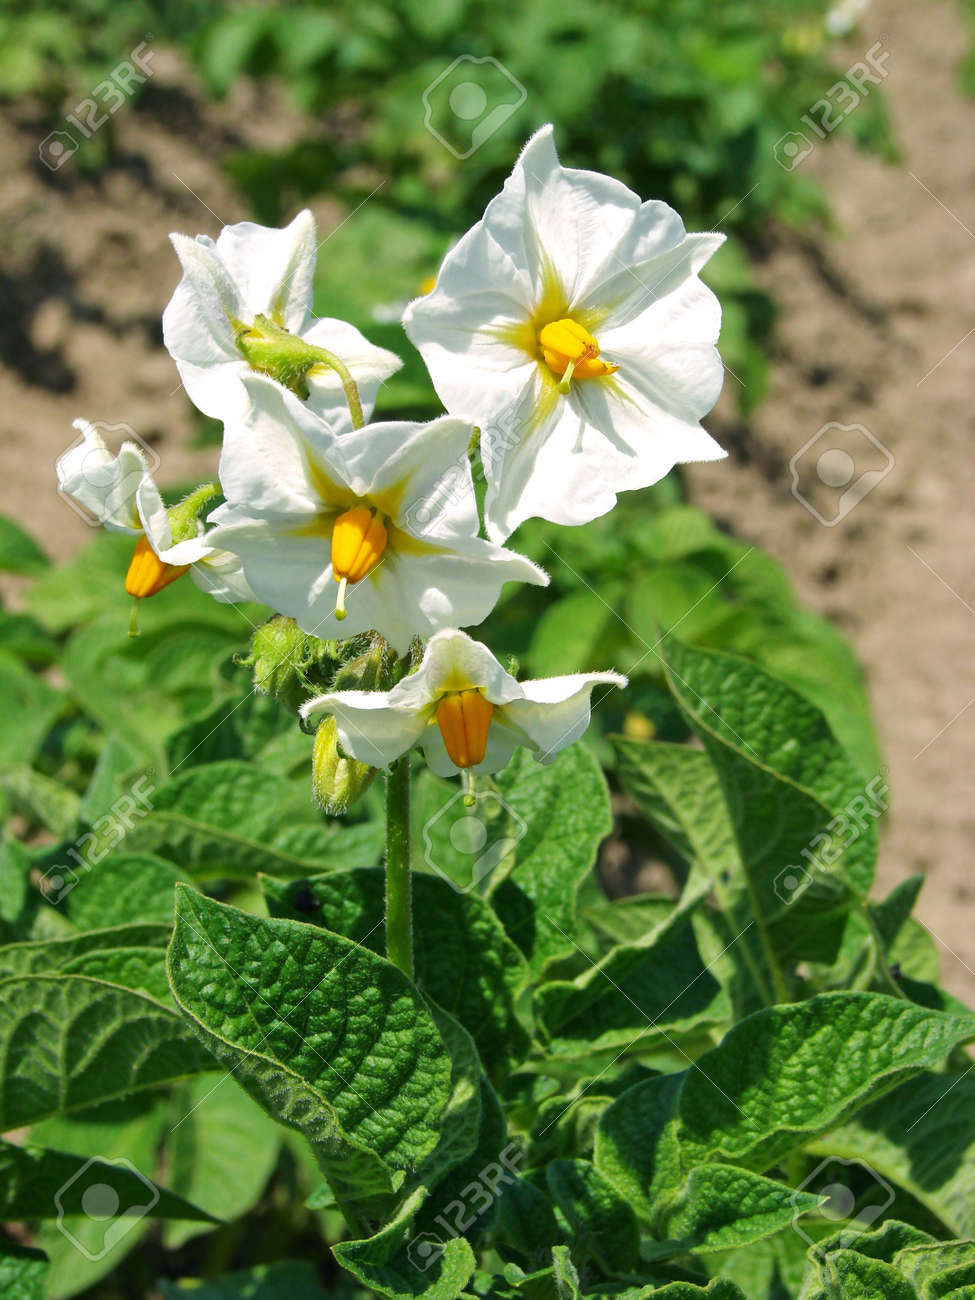 Potato Plant With White Flowers On The Vegetable Bed Stock Photo